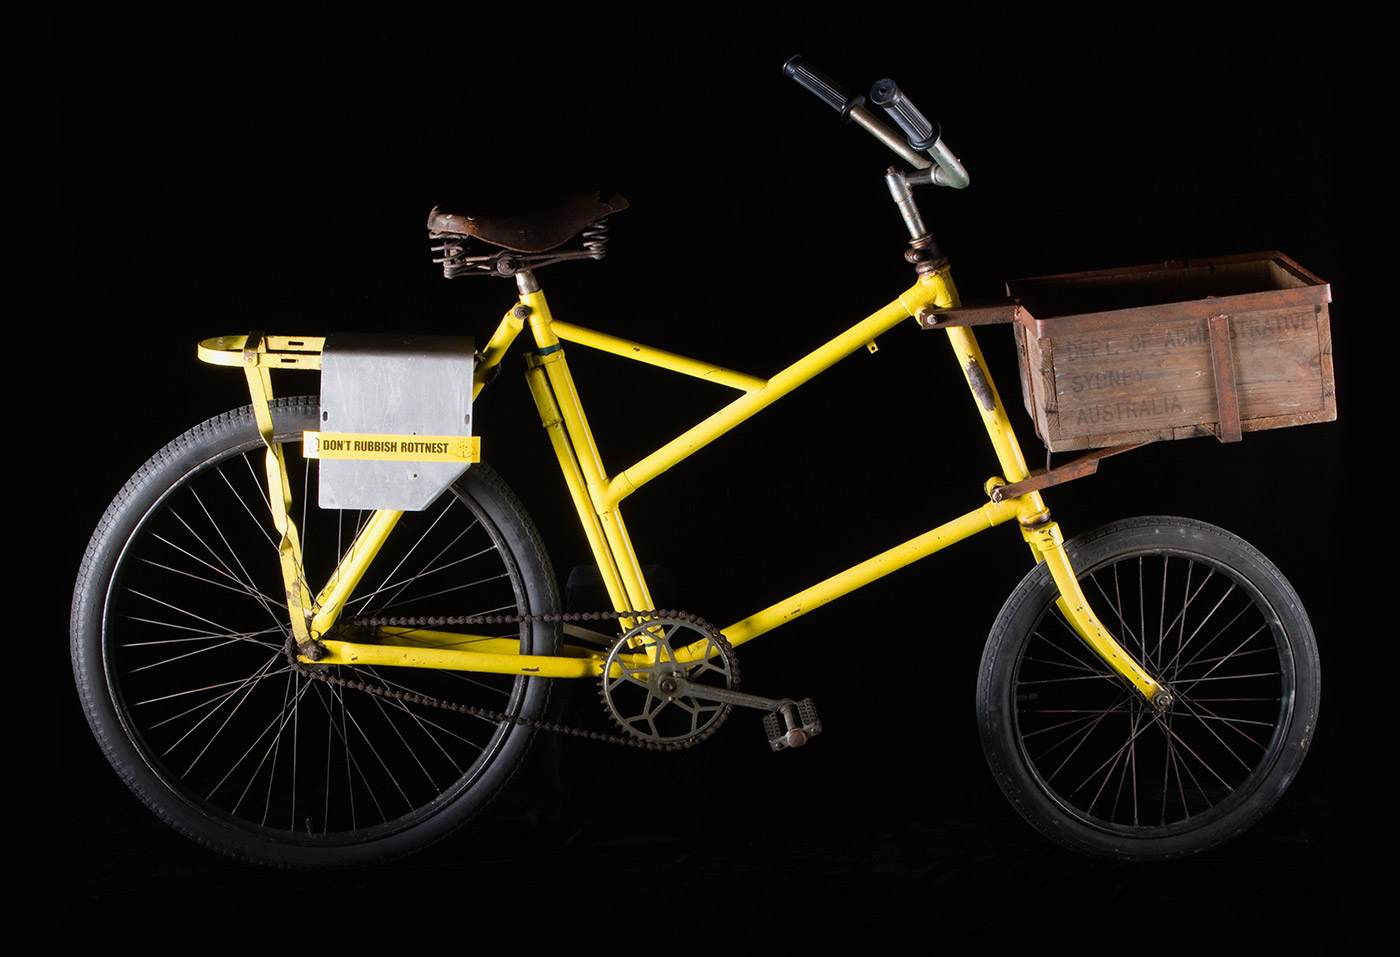 A bright yellow bicycle with a wooden box fixed to the front and a sign affixed to the rack that reads 'DON'T RUBBISH ROTTNEST' - click to view larger image